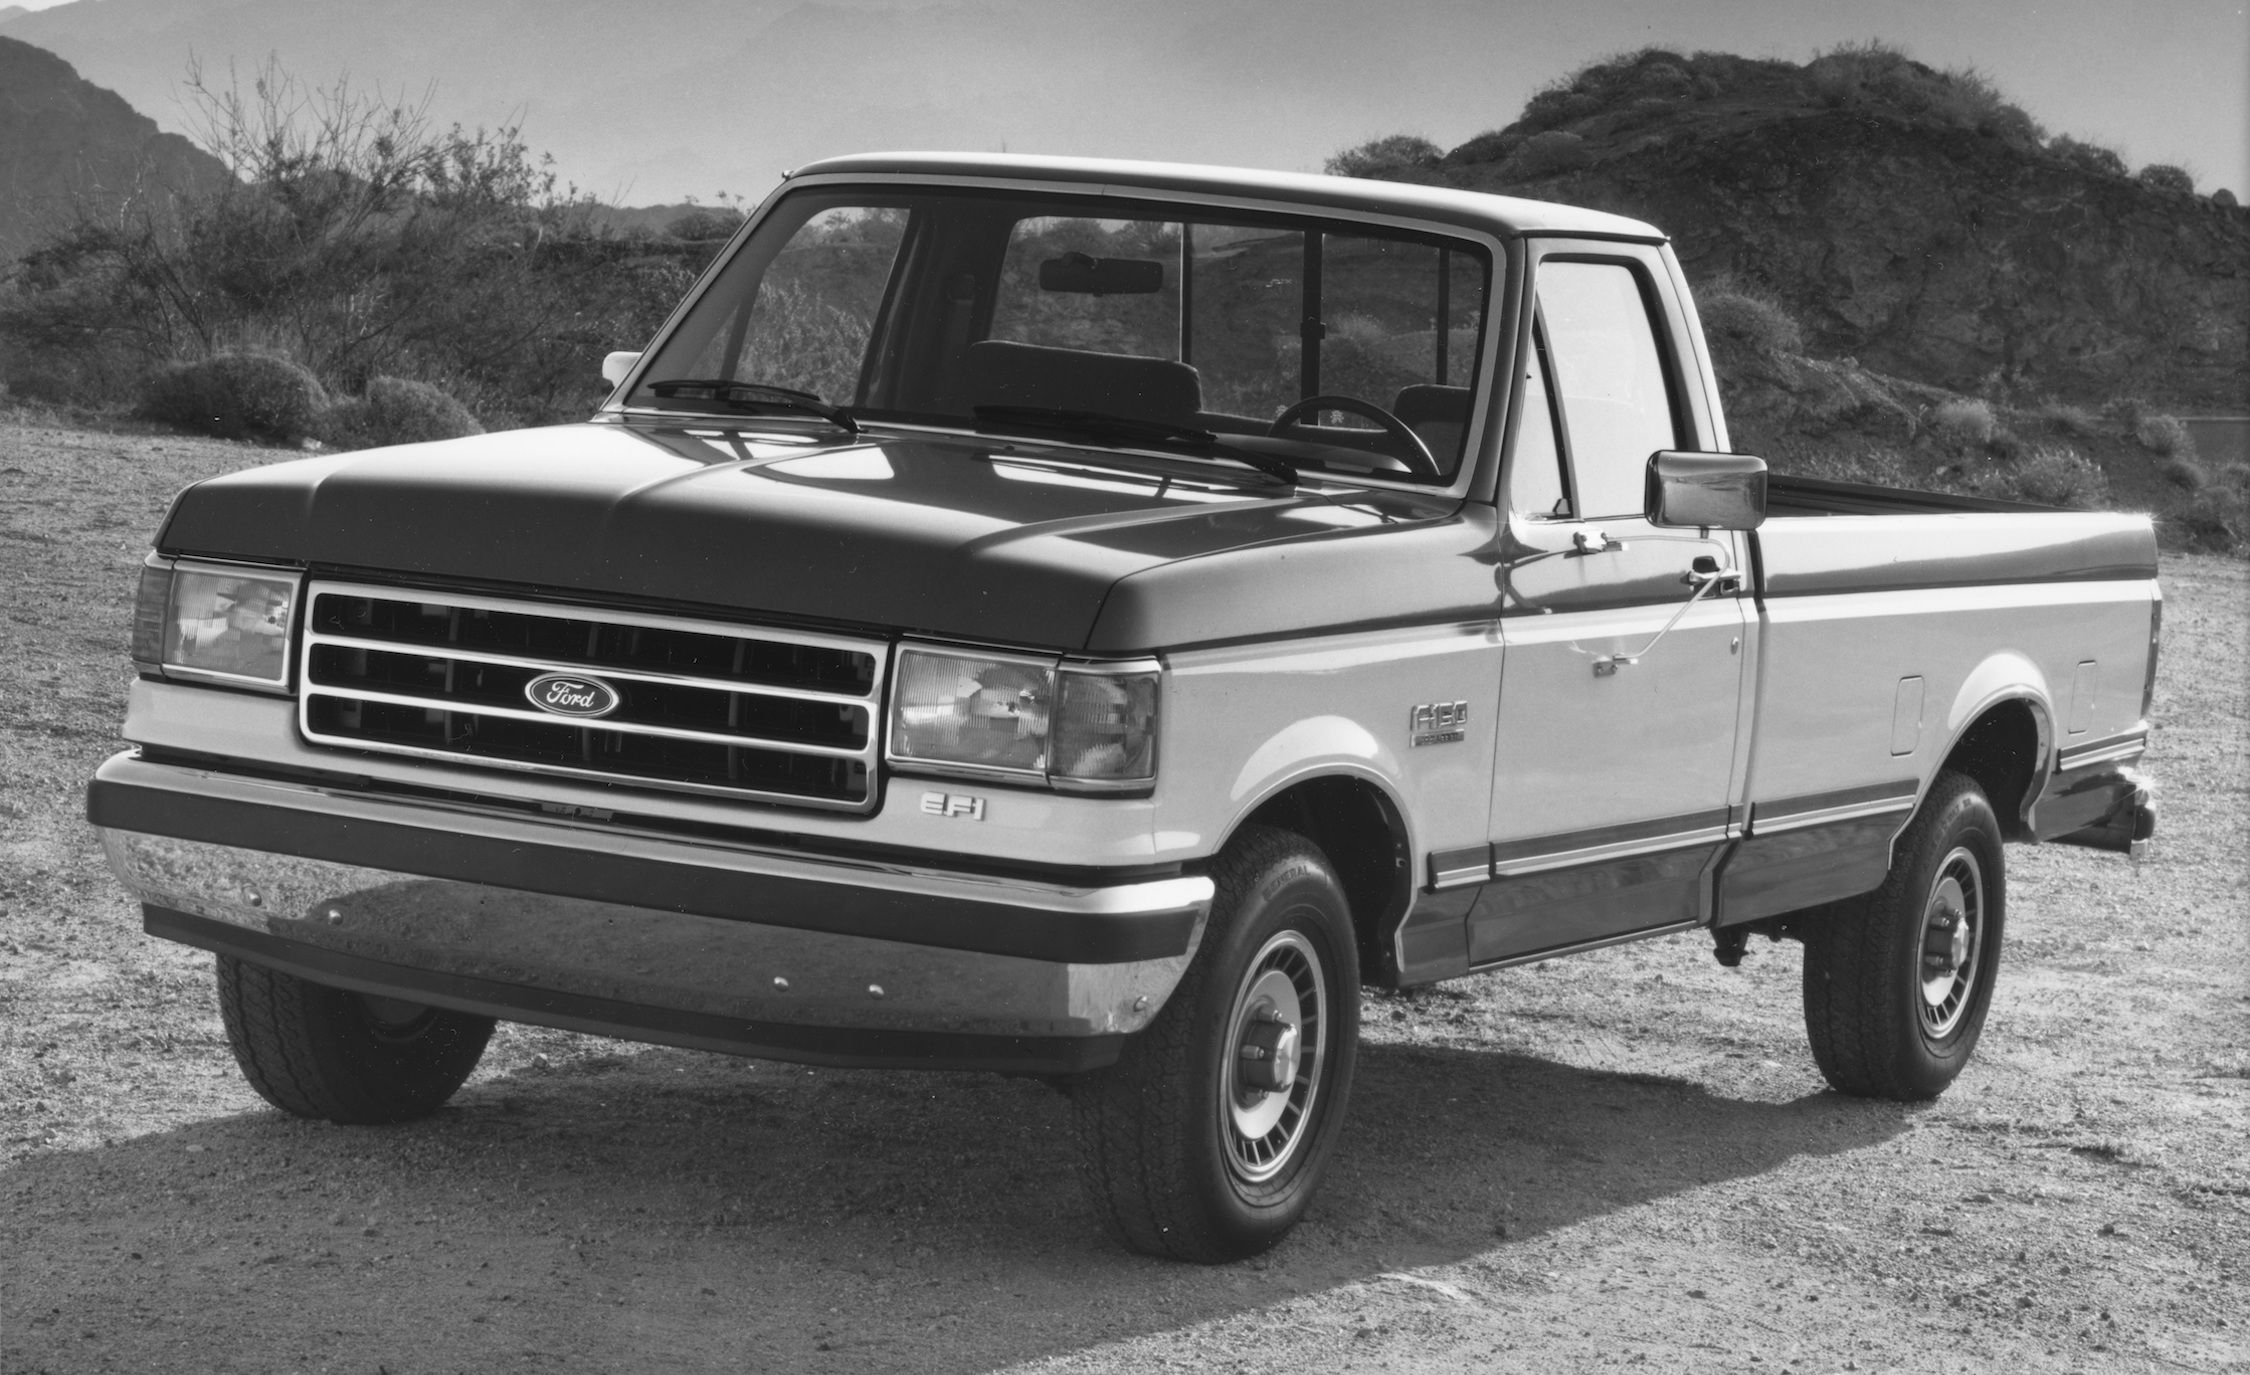 Fords F Series Pickup Truck Its History From The Model